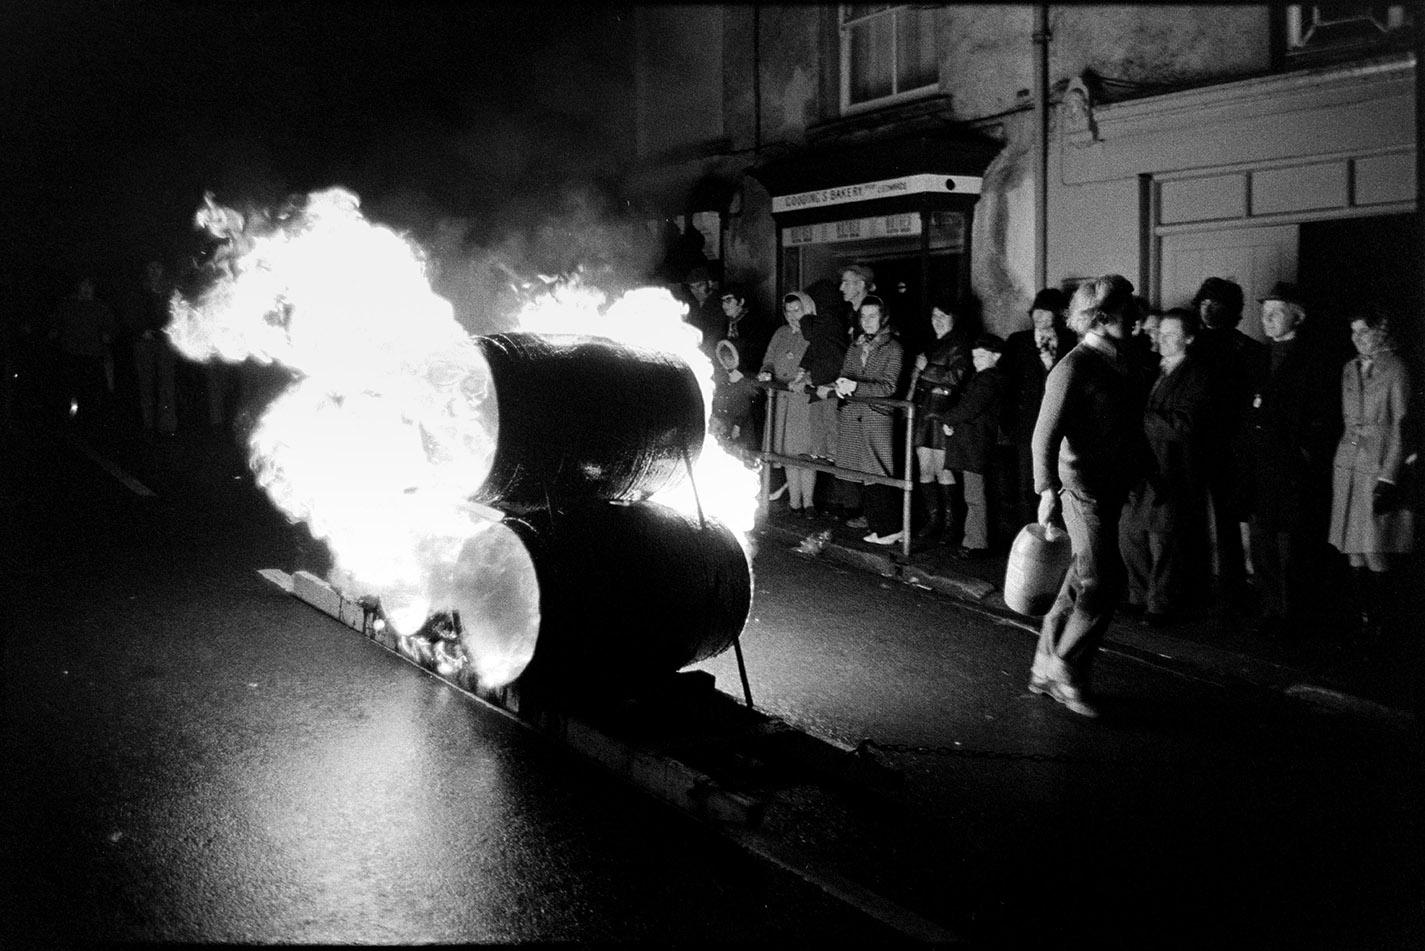 Burning tar barrels being pulled through the street at night, Hatherleigh, 6 November 1974